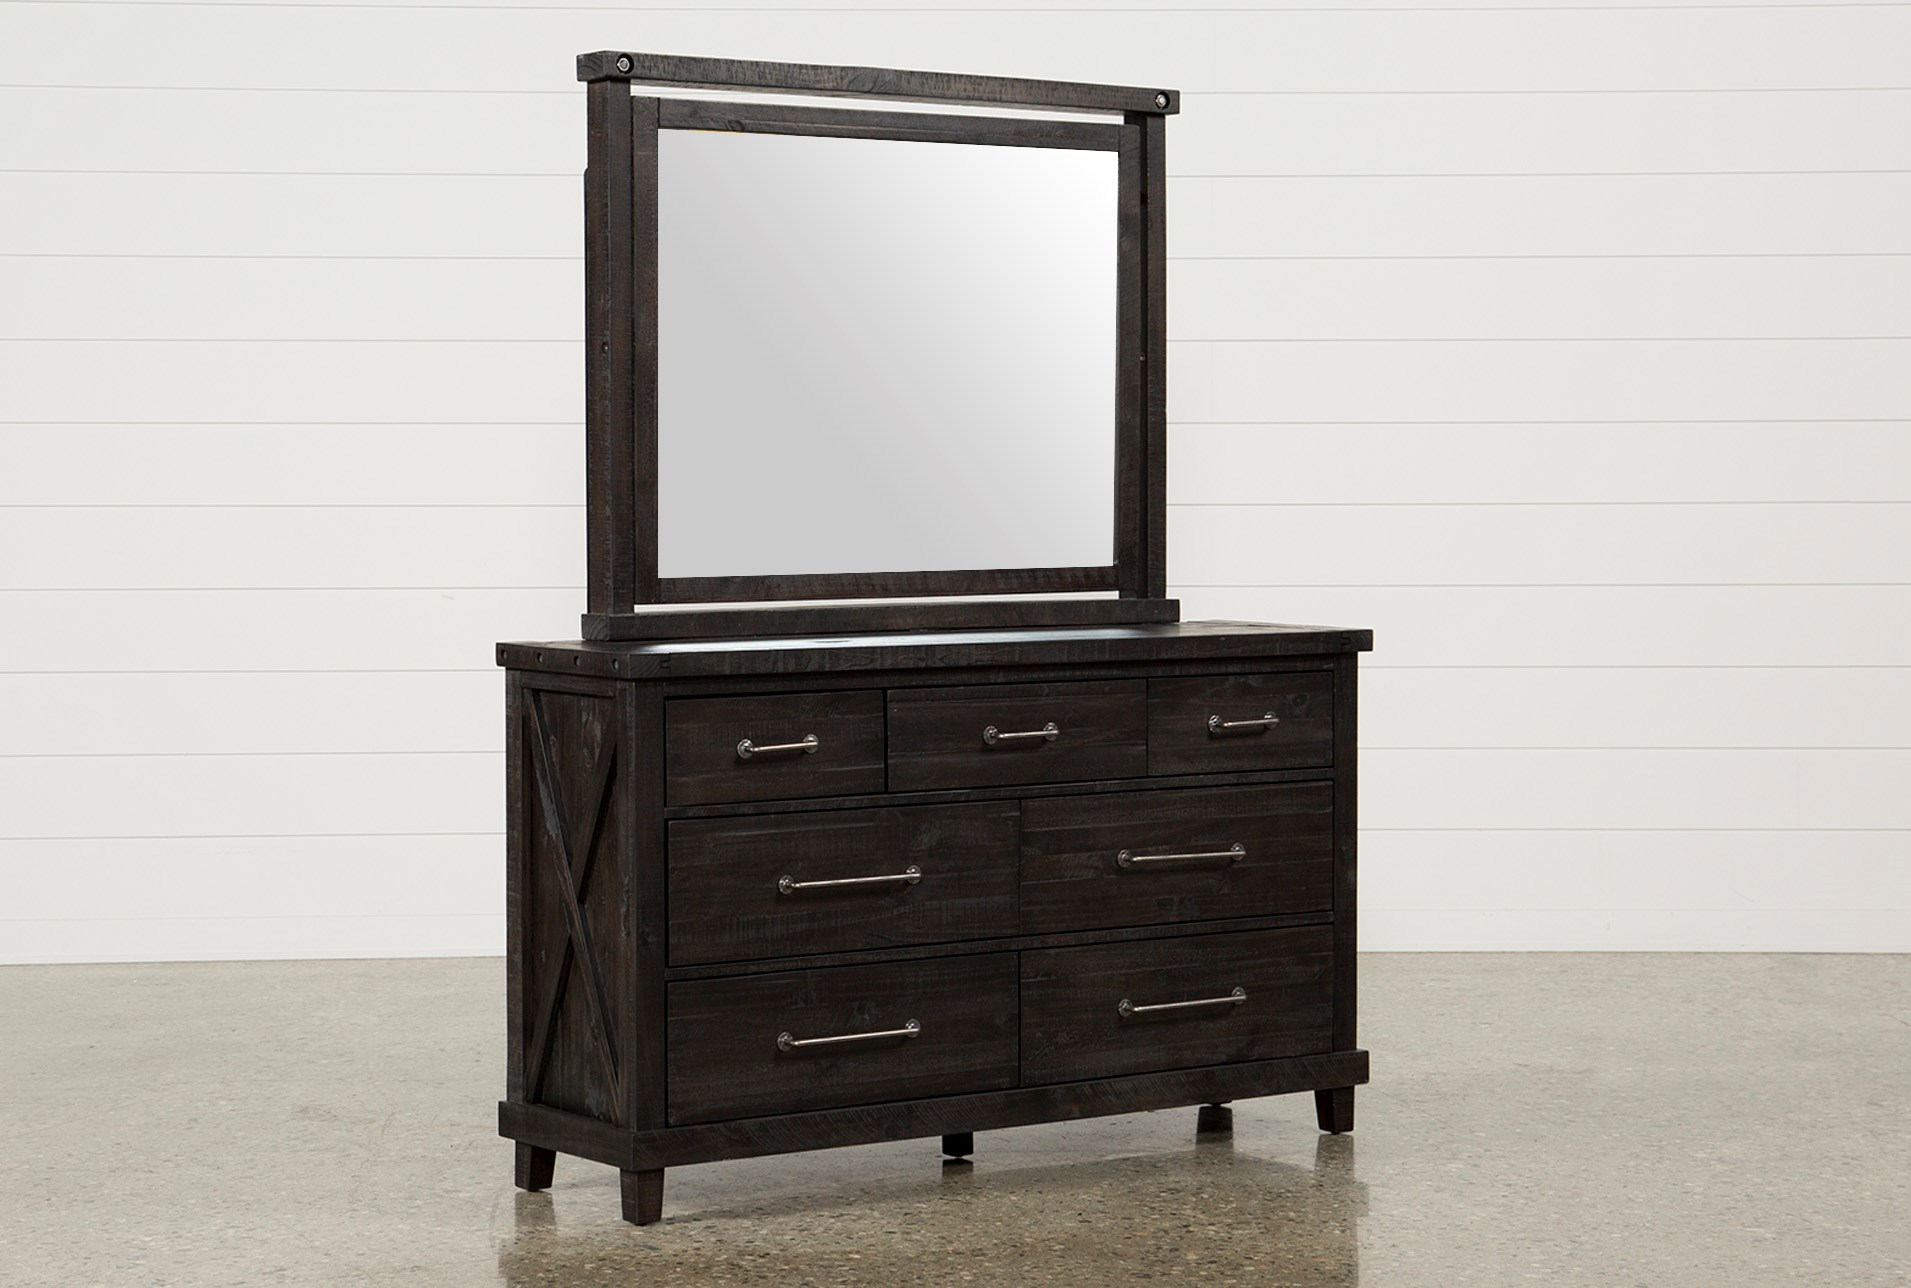 with fancee product jaeger bedroom dresser mirror